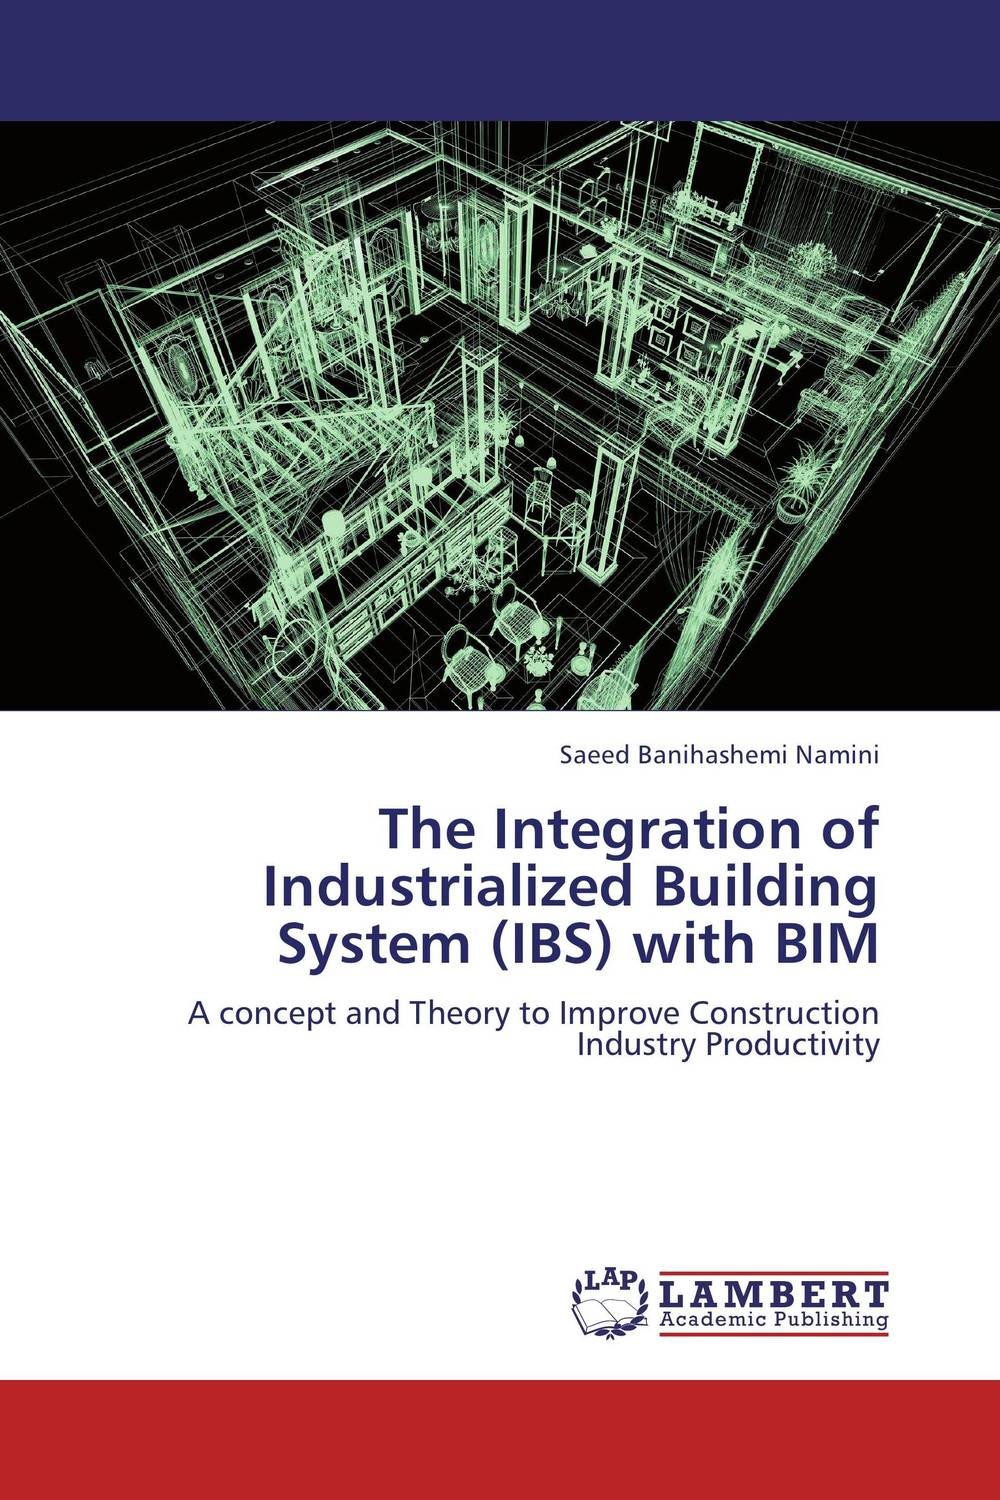 The Integration of Industrialized Building System (IBS) with BIM the integration of industrialized building system ibs with bim